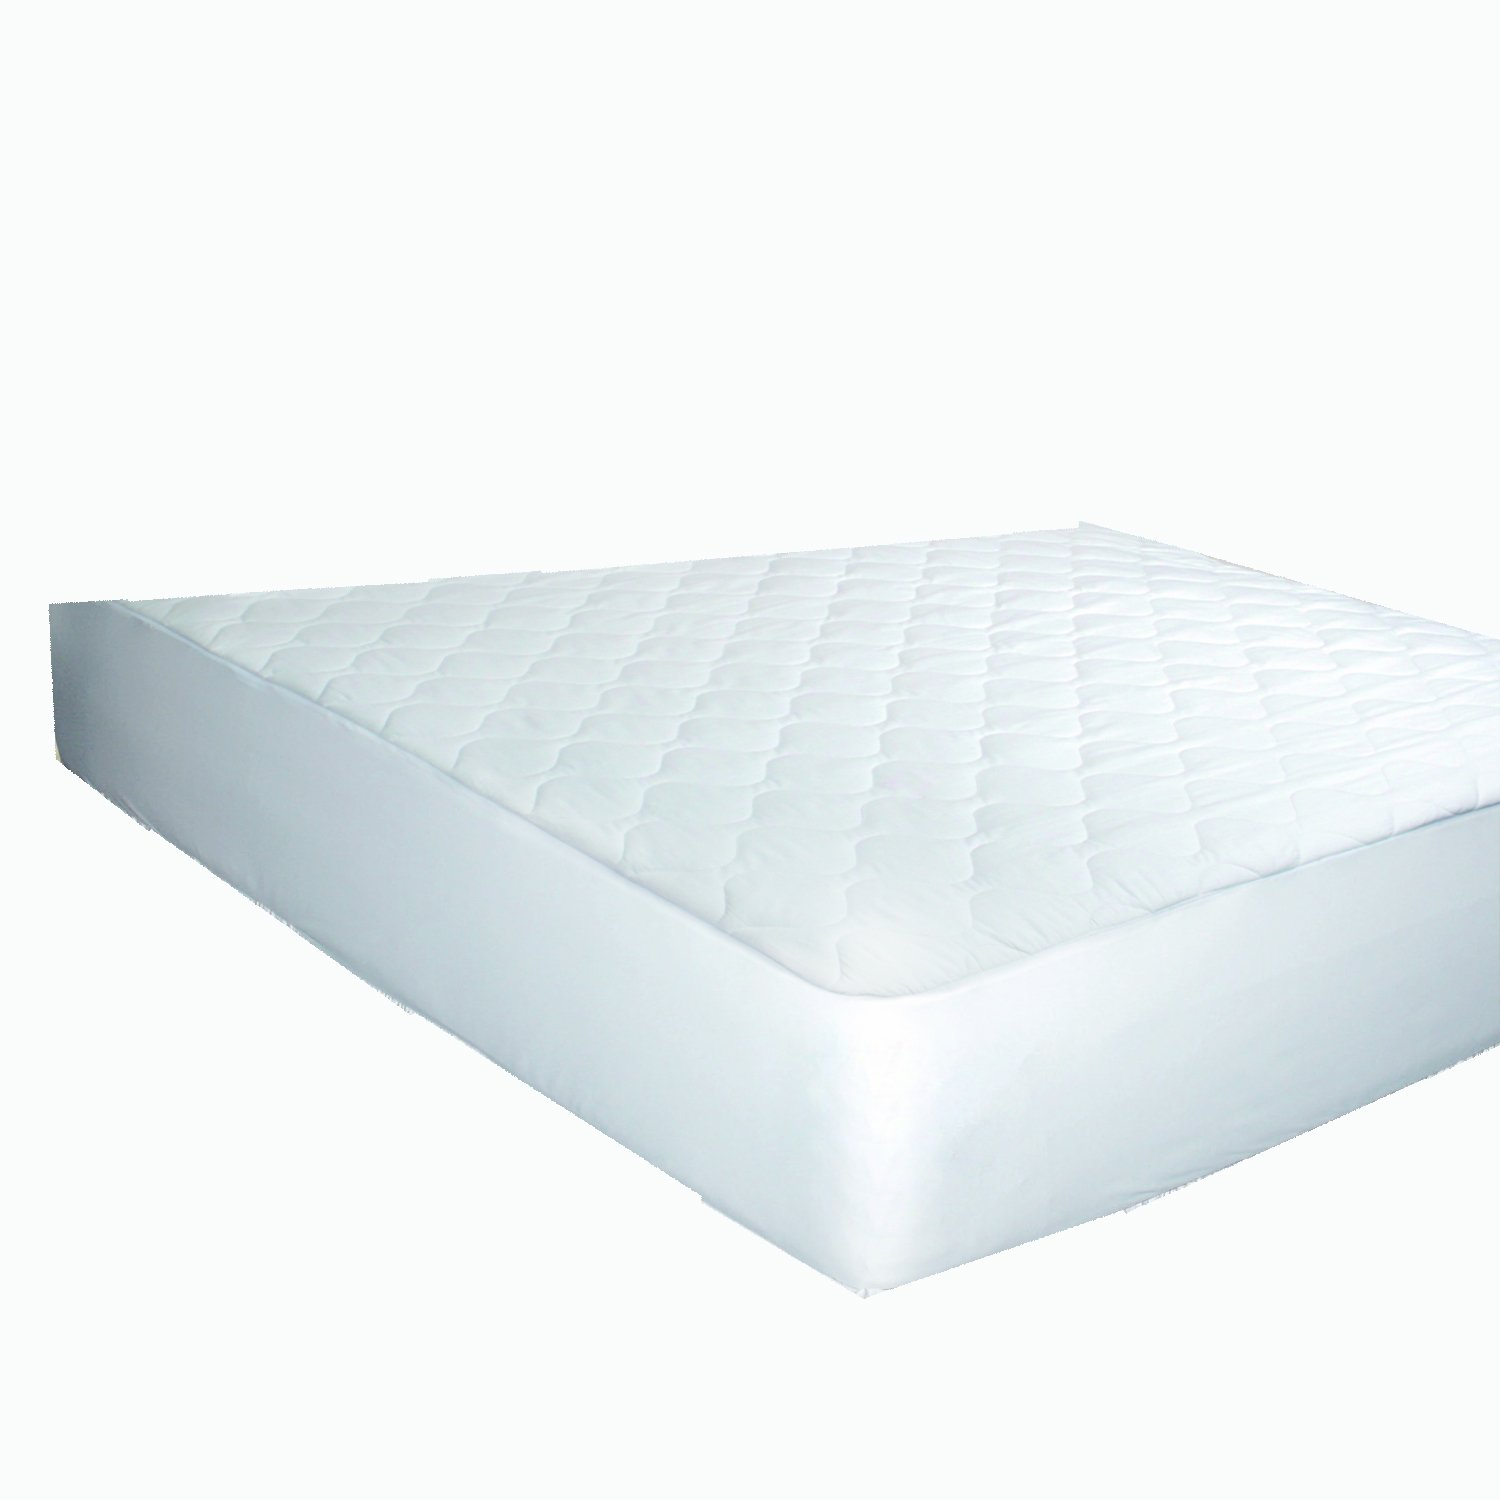 Newpoint 180 Thread Count Waterproof Cover Mattress Pad Twin Extra Long  New  eBay